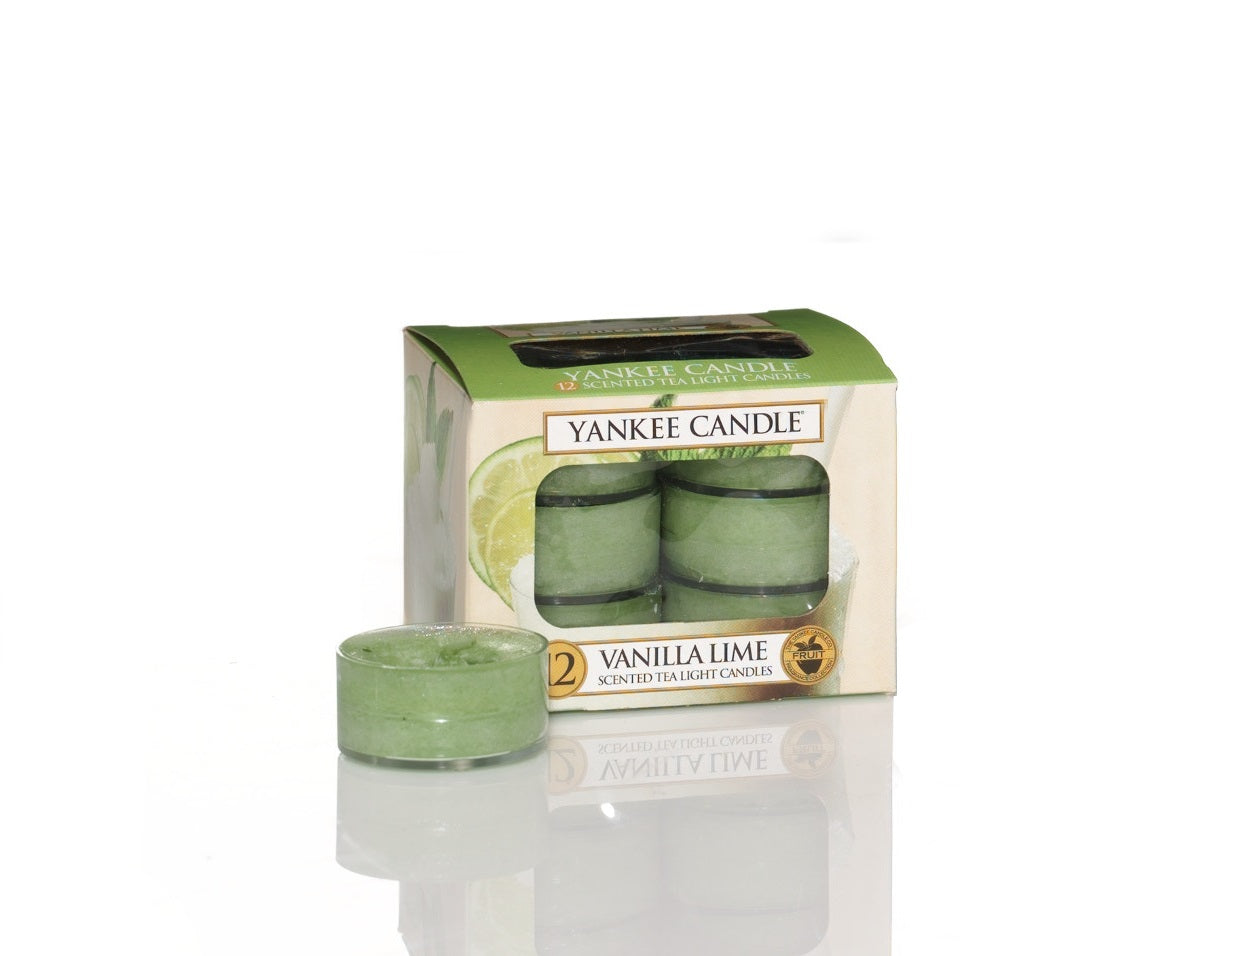 VANILLA LIME -Yankee Candle- Tea Light